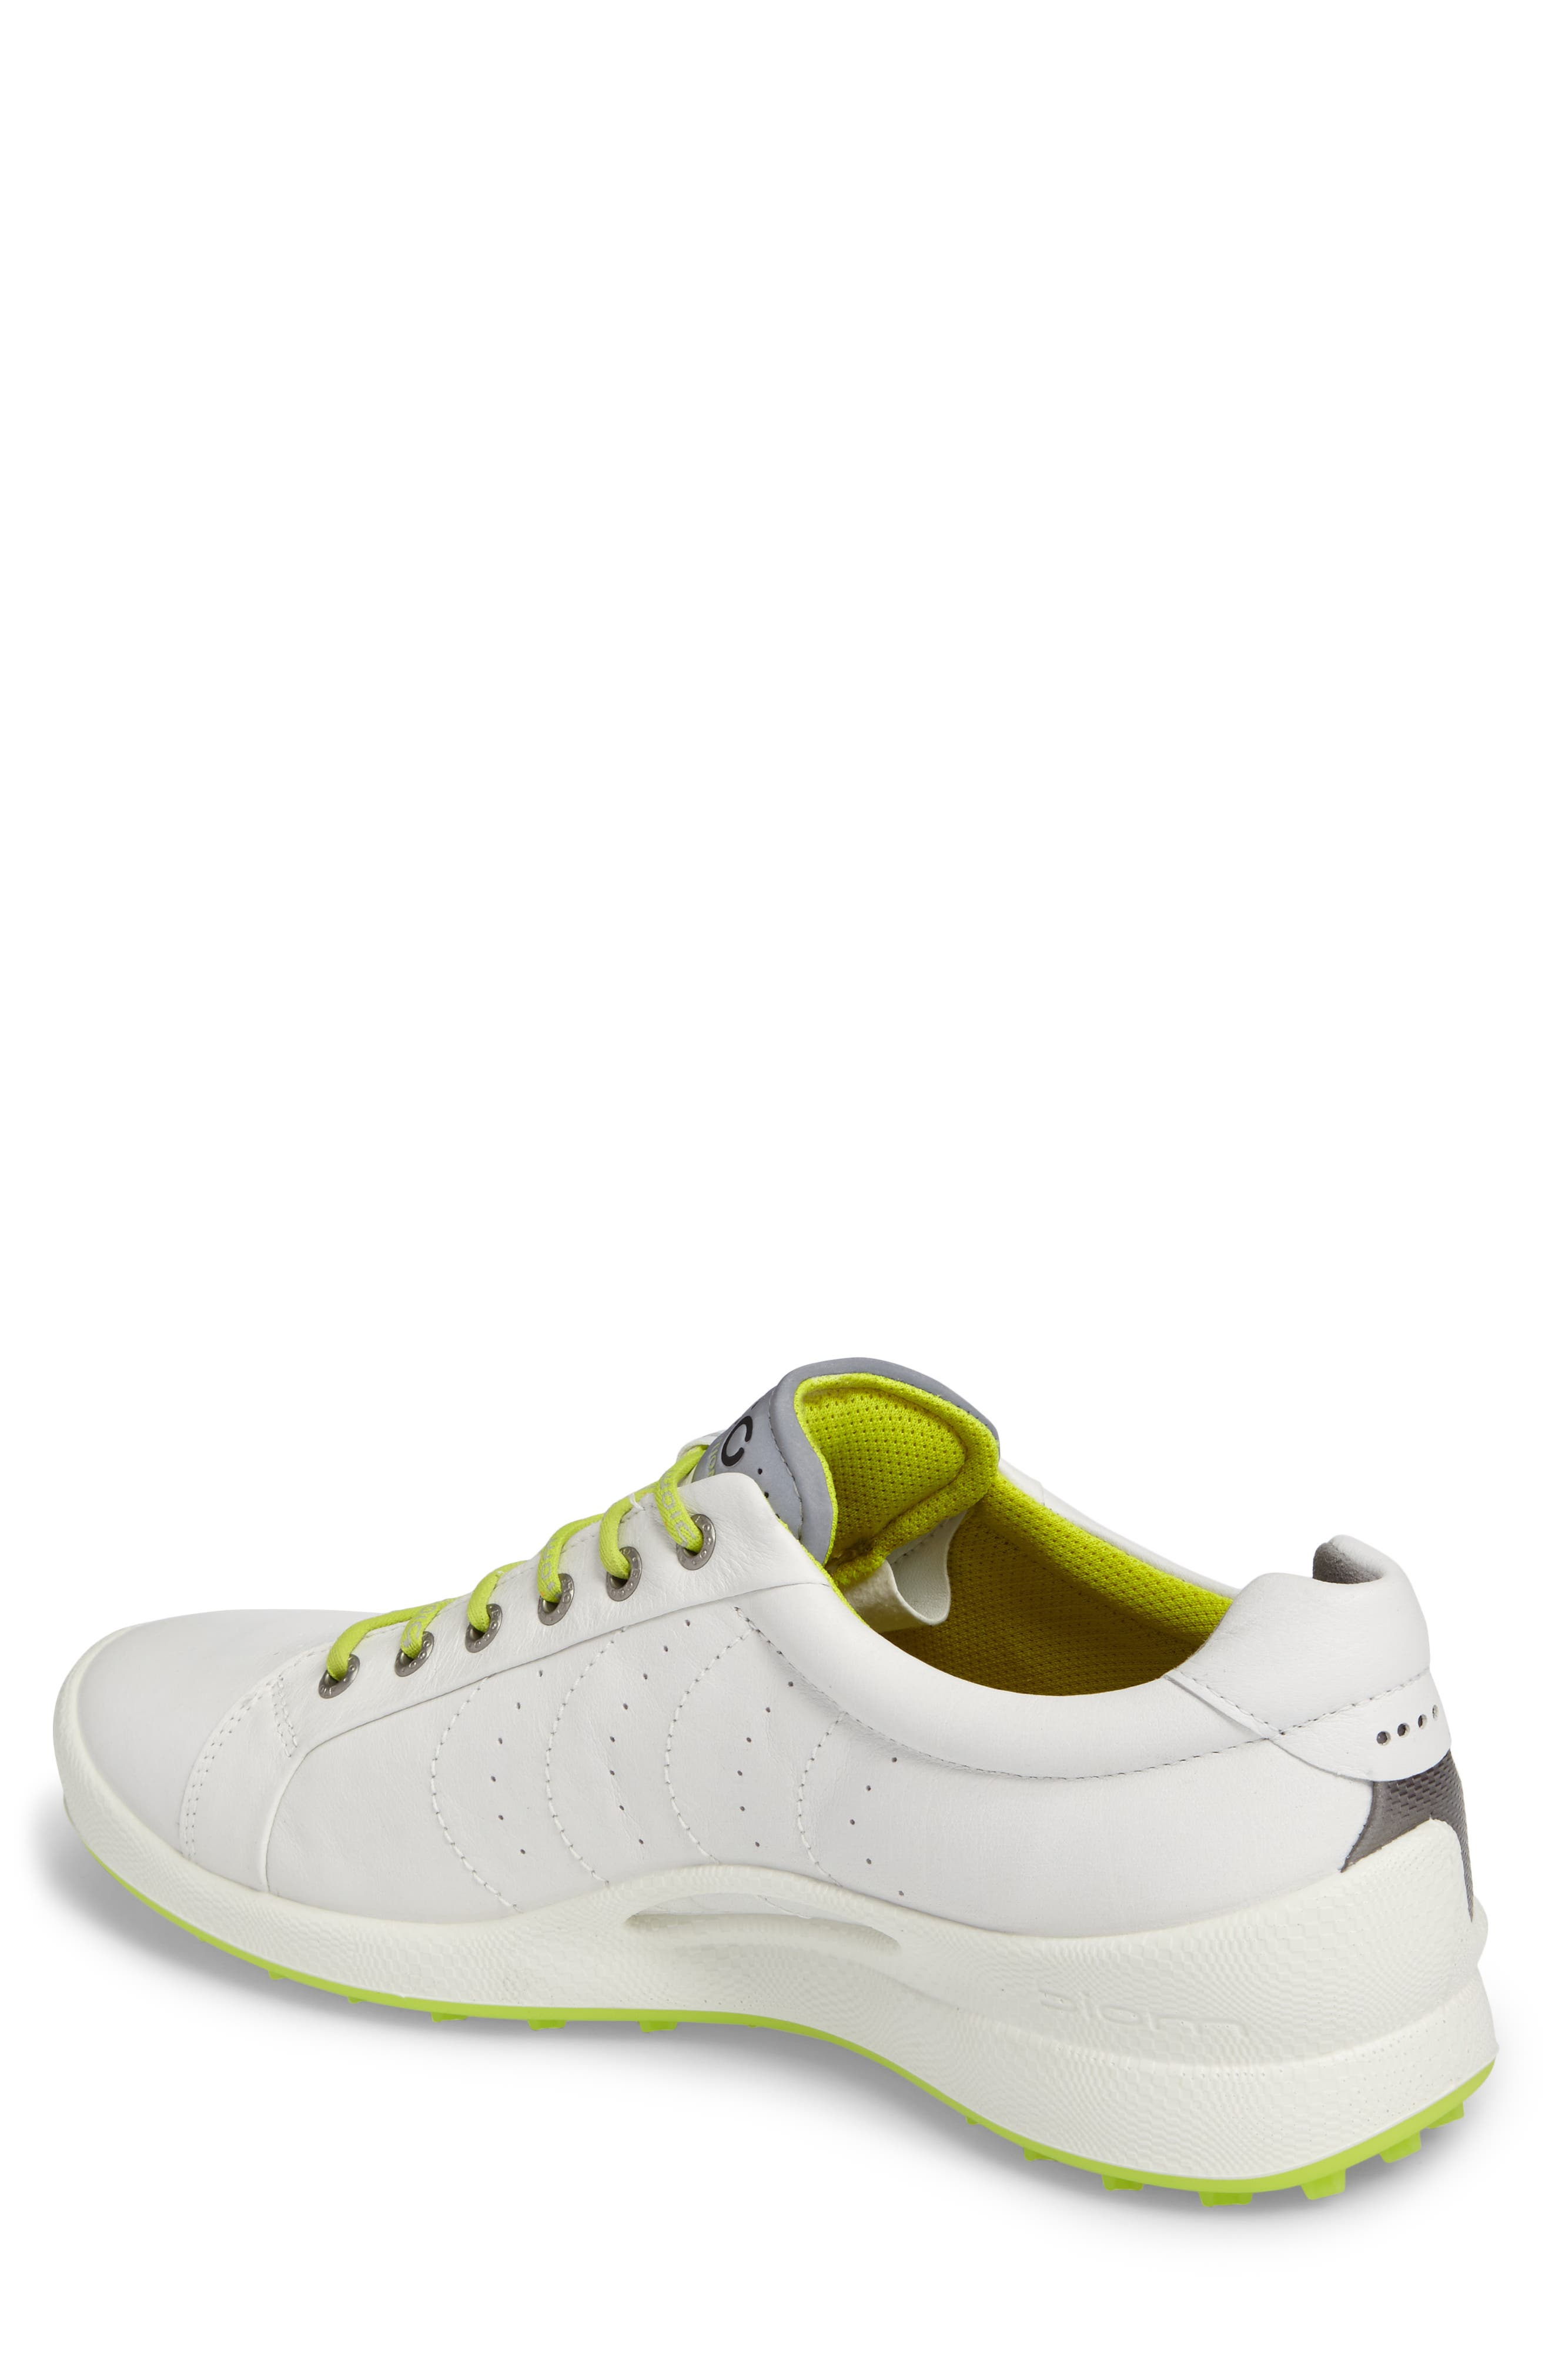 Alternate Image 2  - ECCO 'Biom Hybrid' Golf Shoe   (Men)